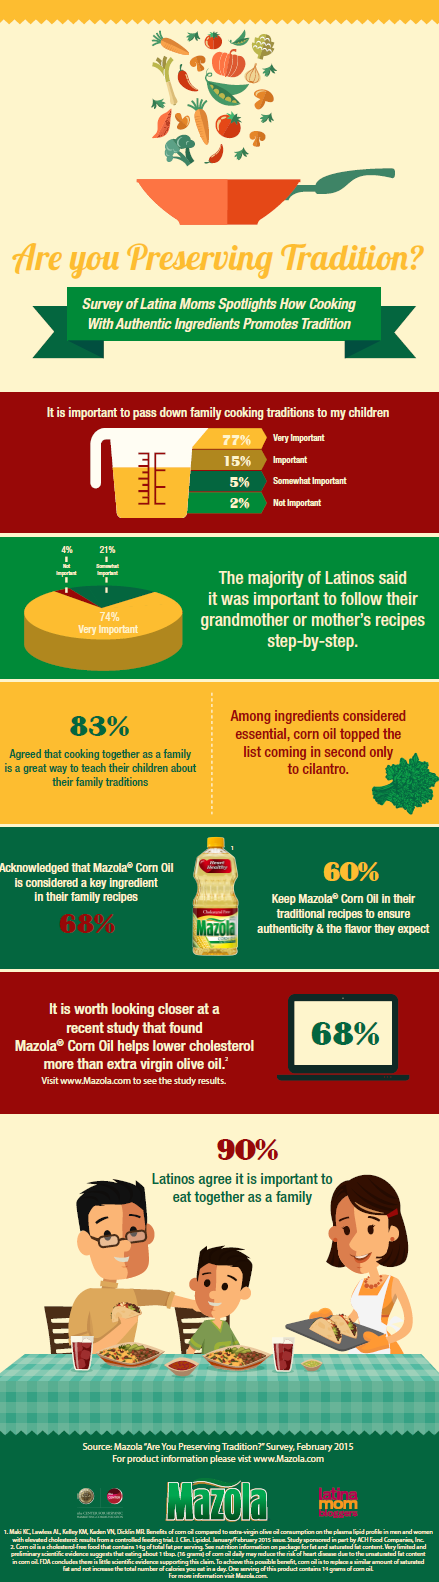 Culinary Traditions Survey Infographic_2015